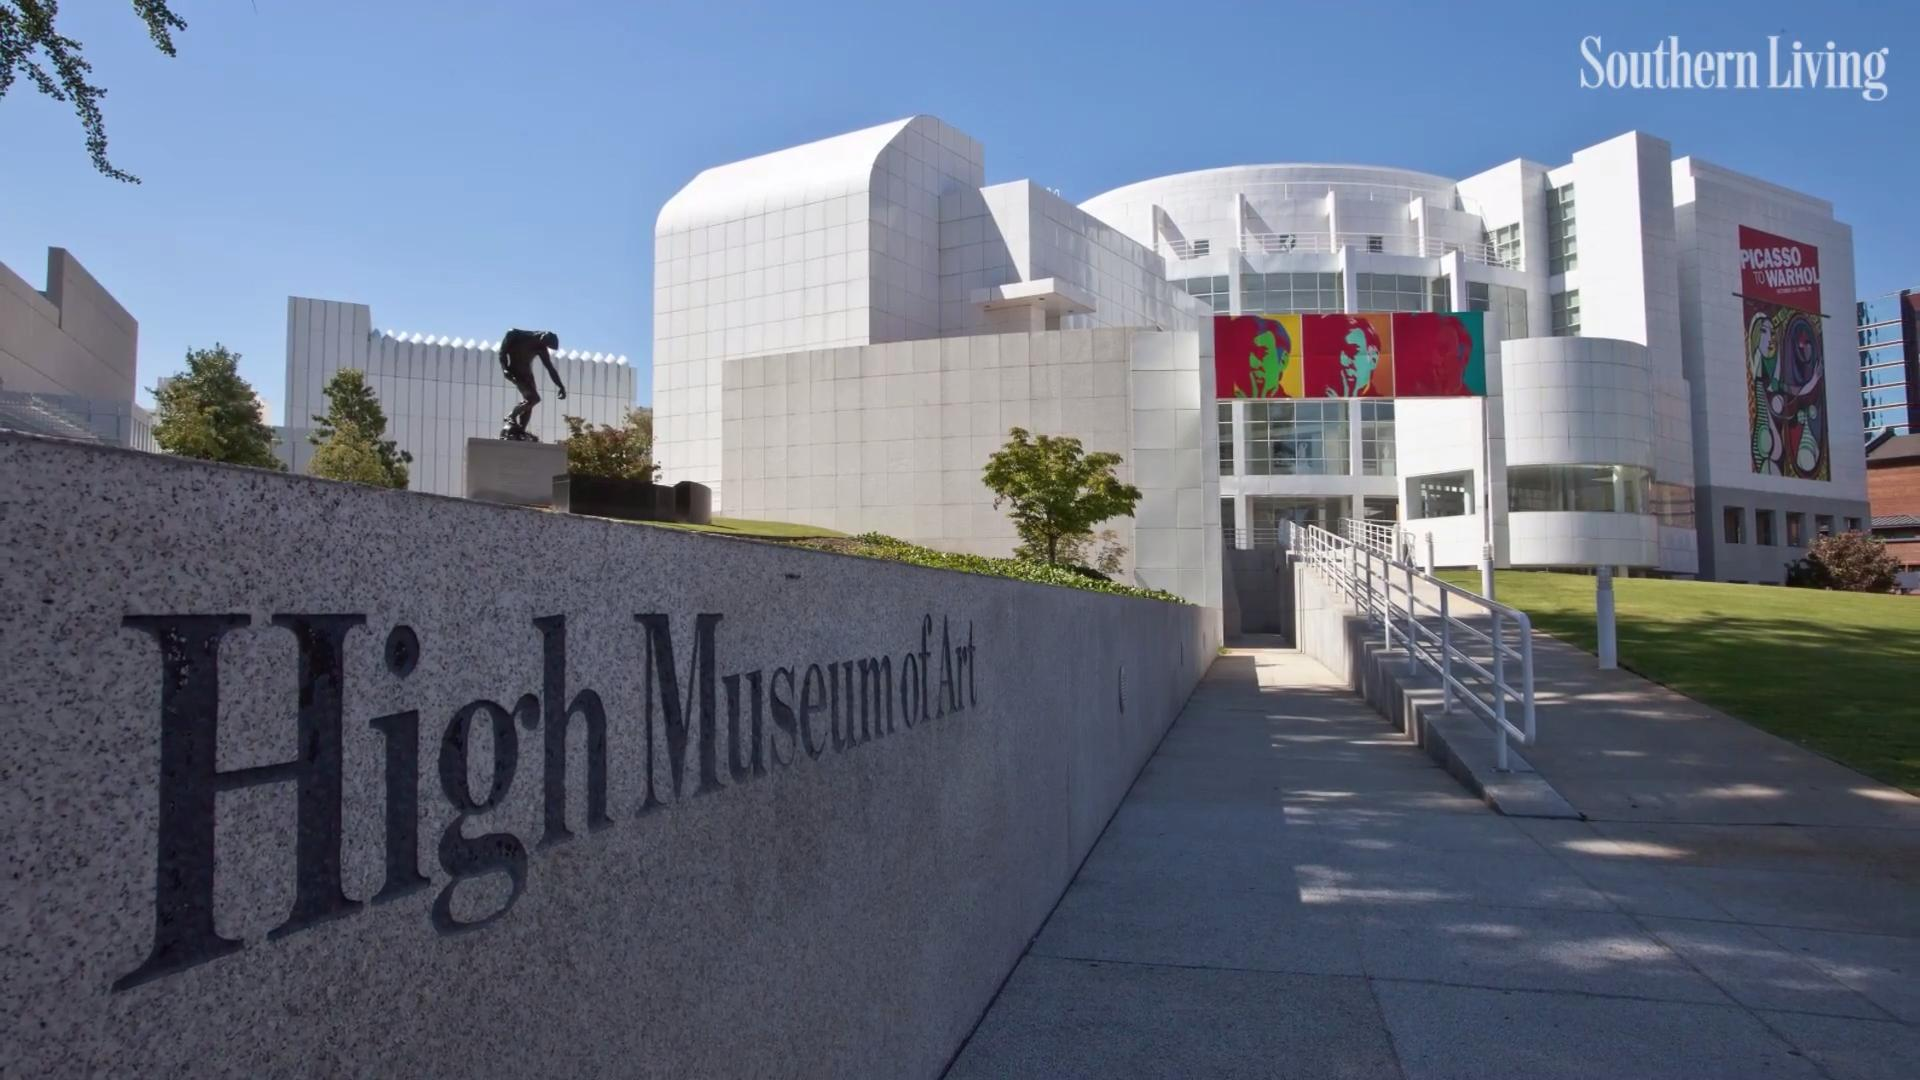 These Museums House both Southern Art and World-Renowned Pieces